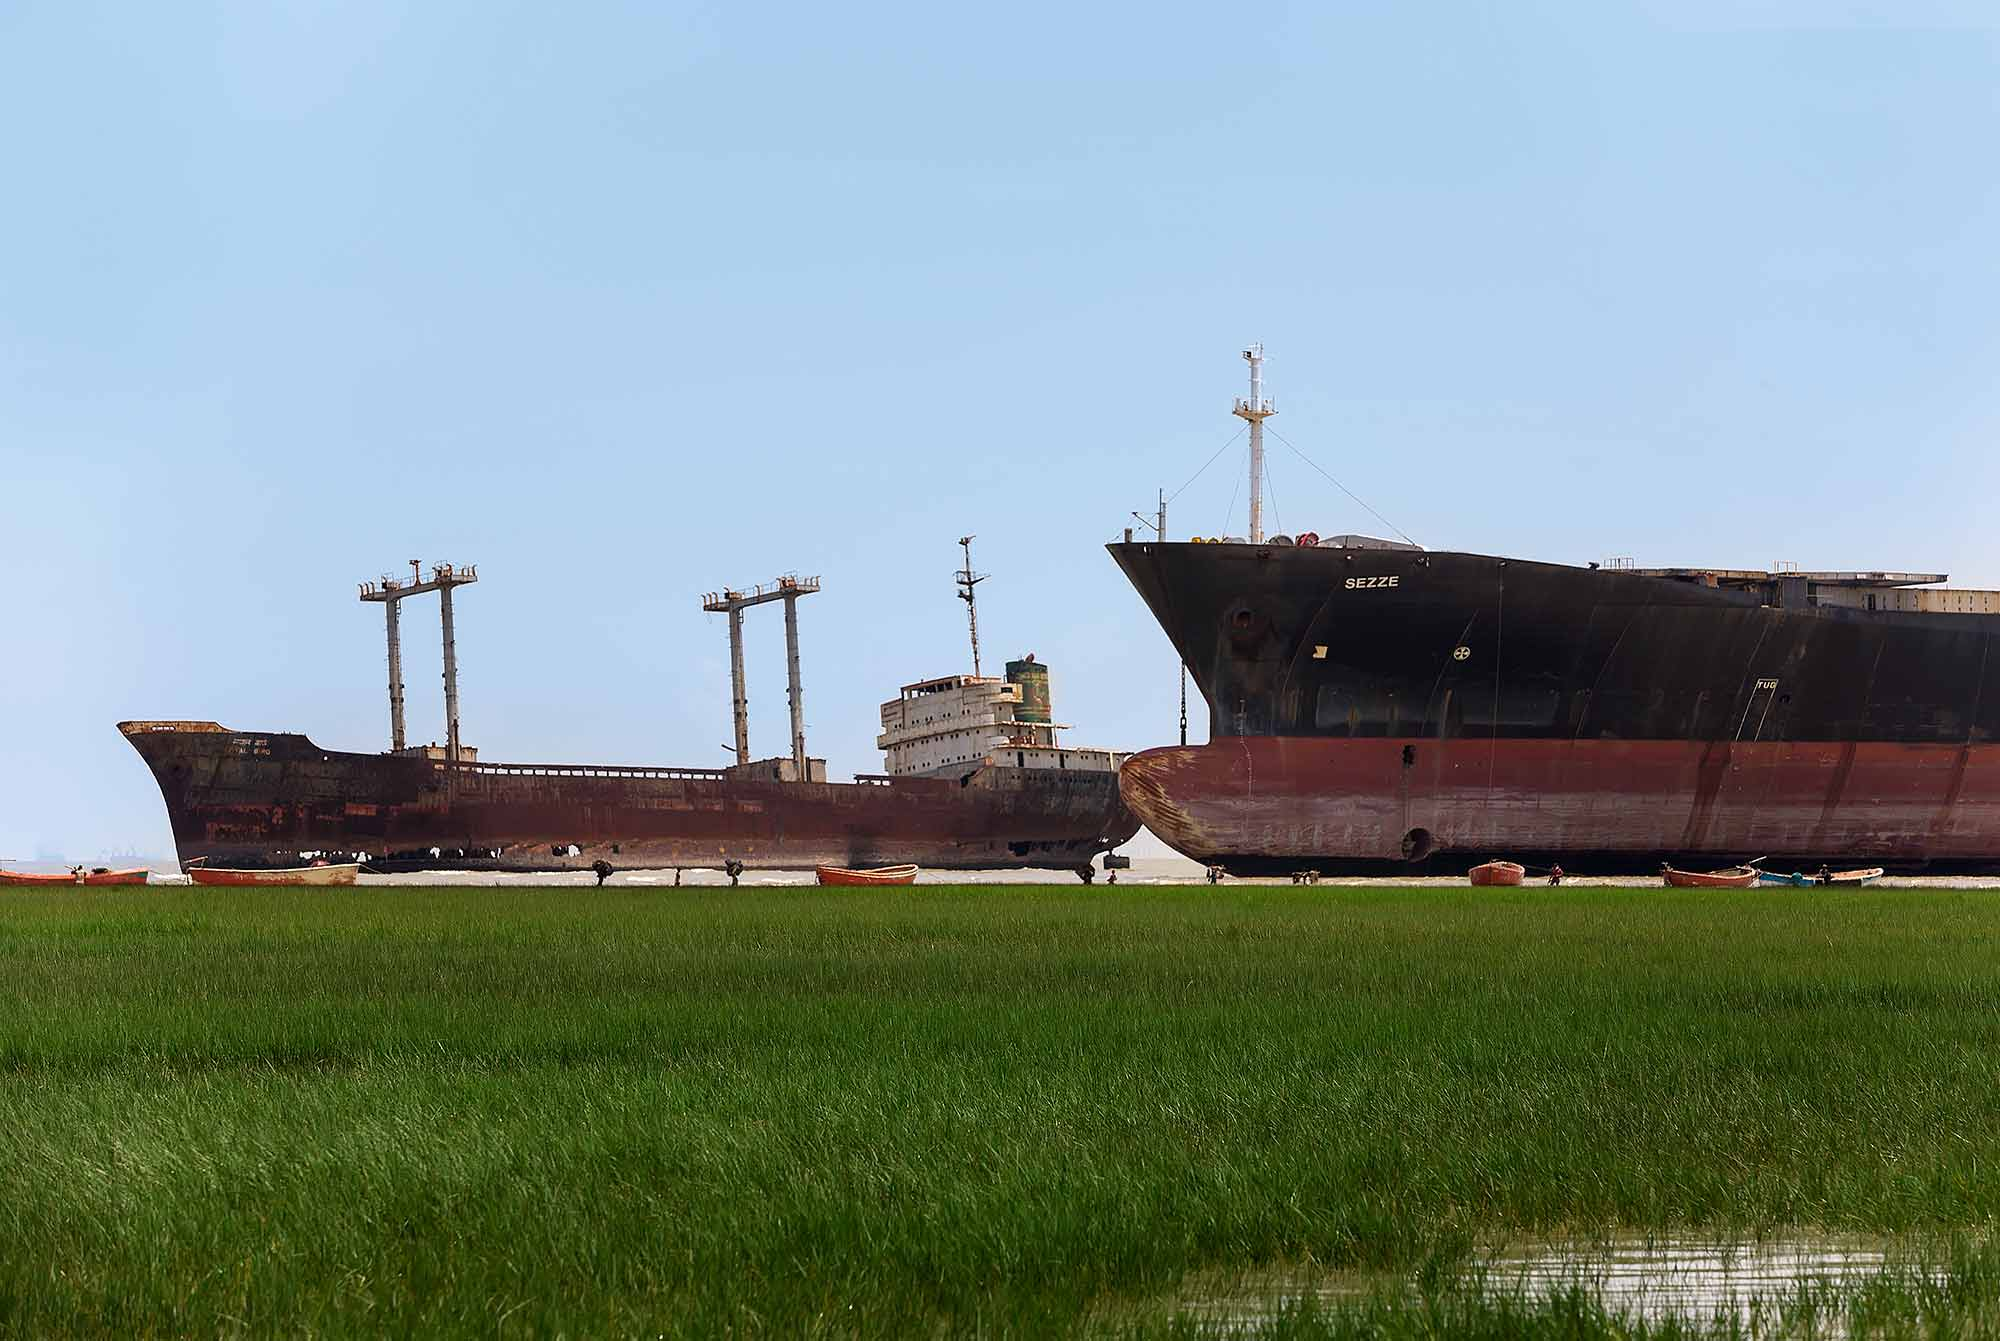 At the ship breaking yard in Chittagong, Bangladesh. © Ulli Maier & Nisa Maier